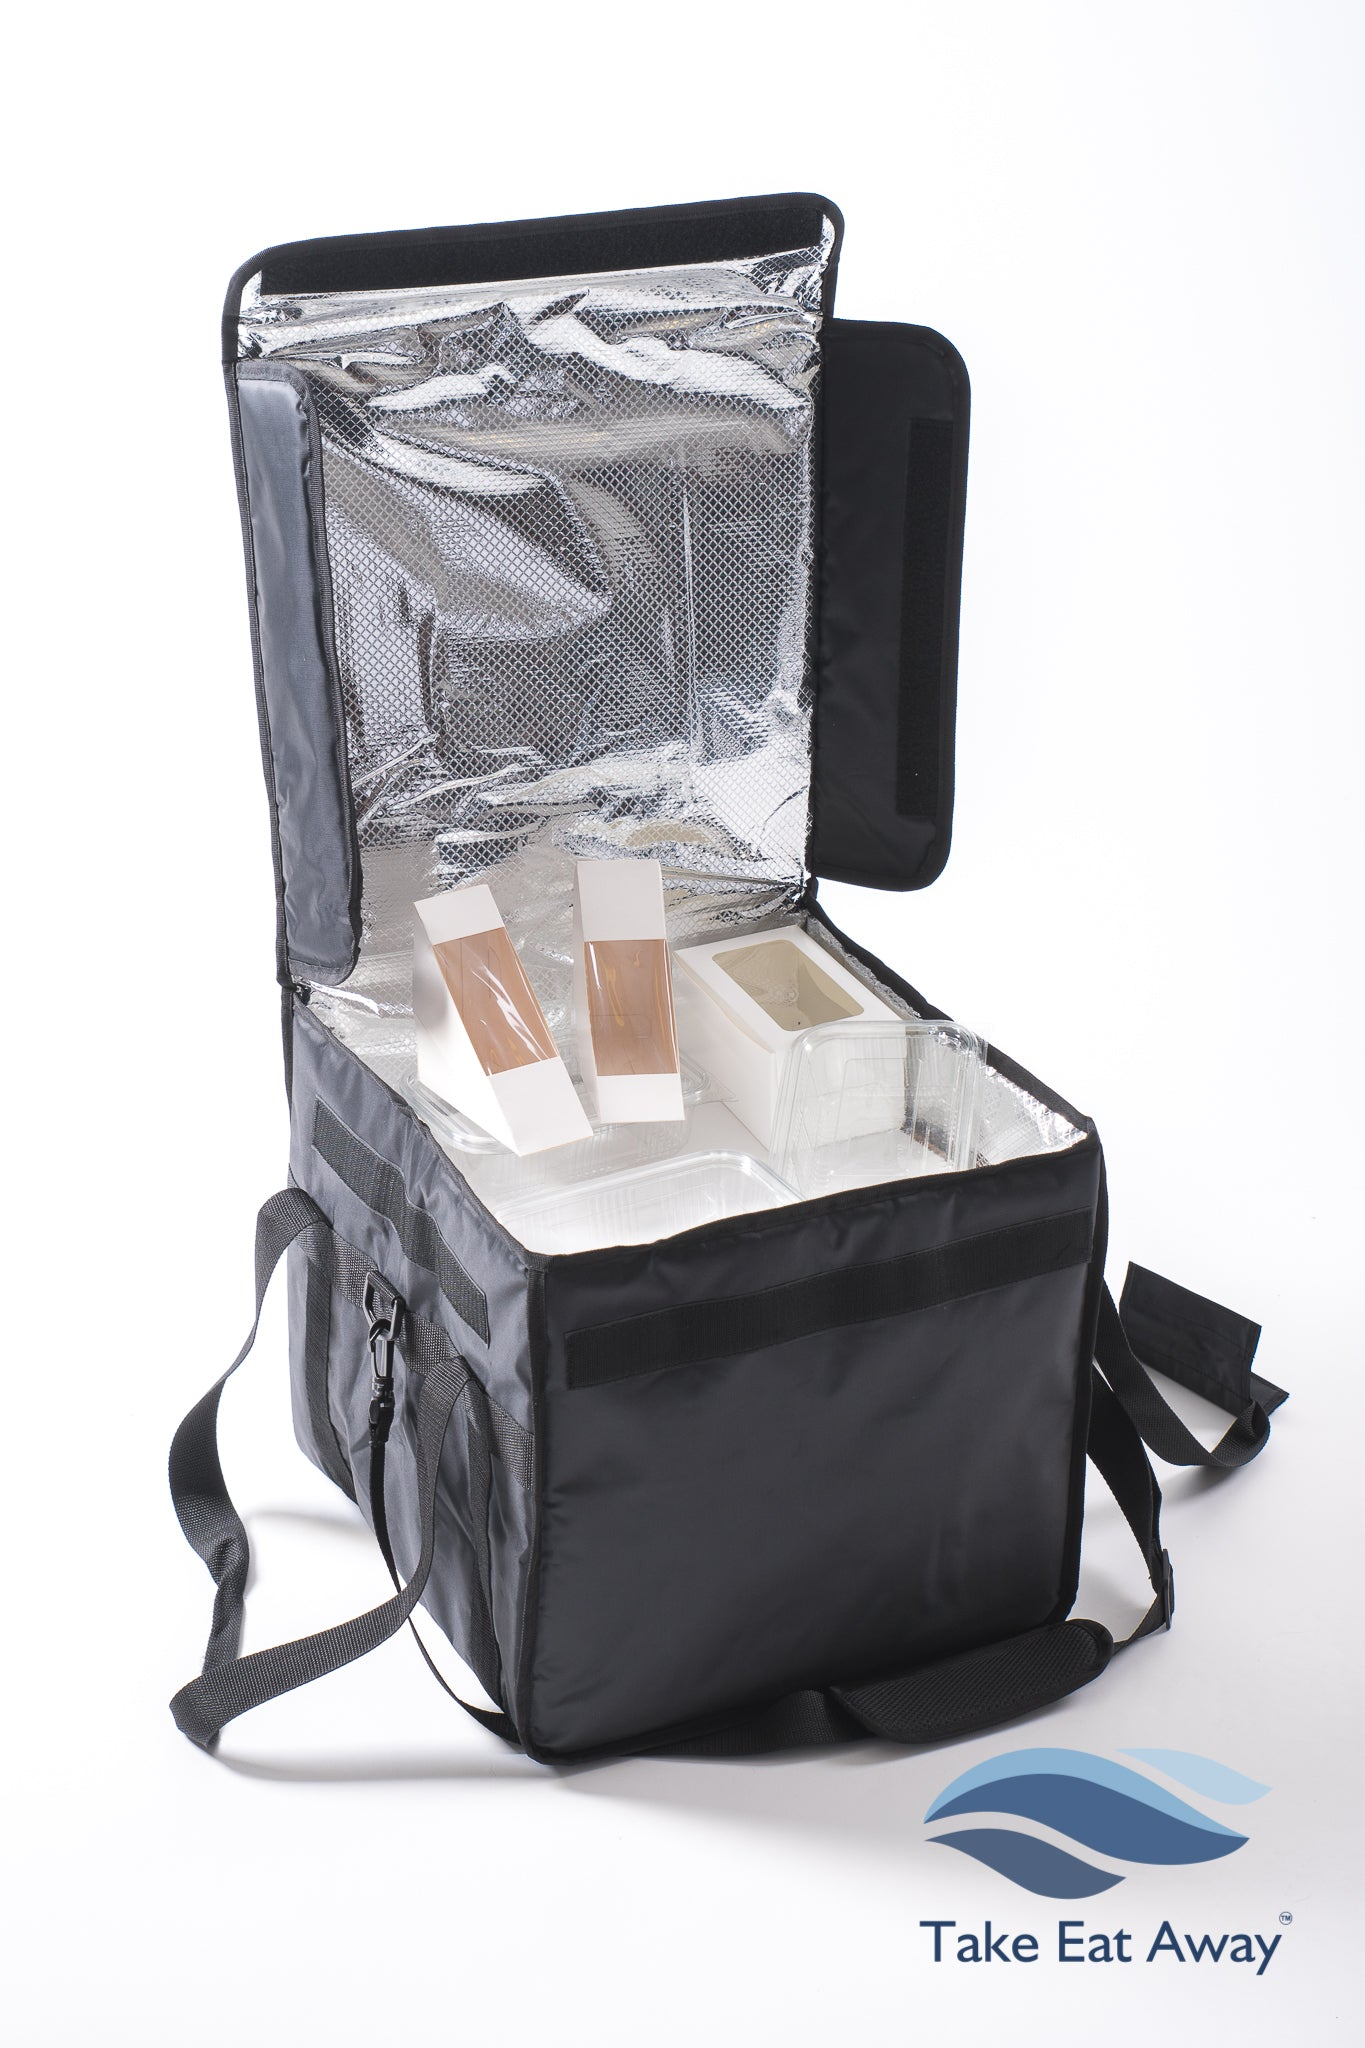 Insulated Cool Delivery Bag - 44 litres Chilled Food Catering Deliveries Bags C7